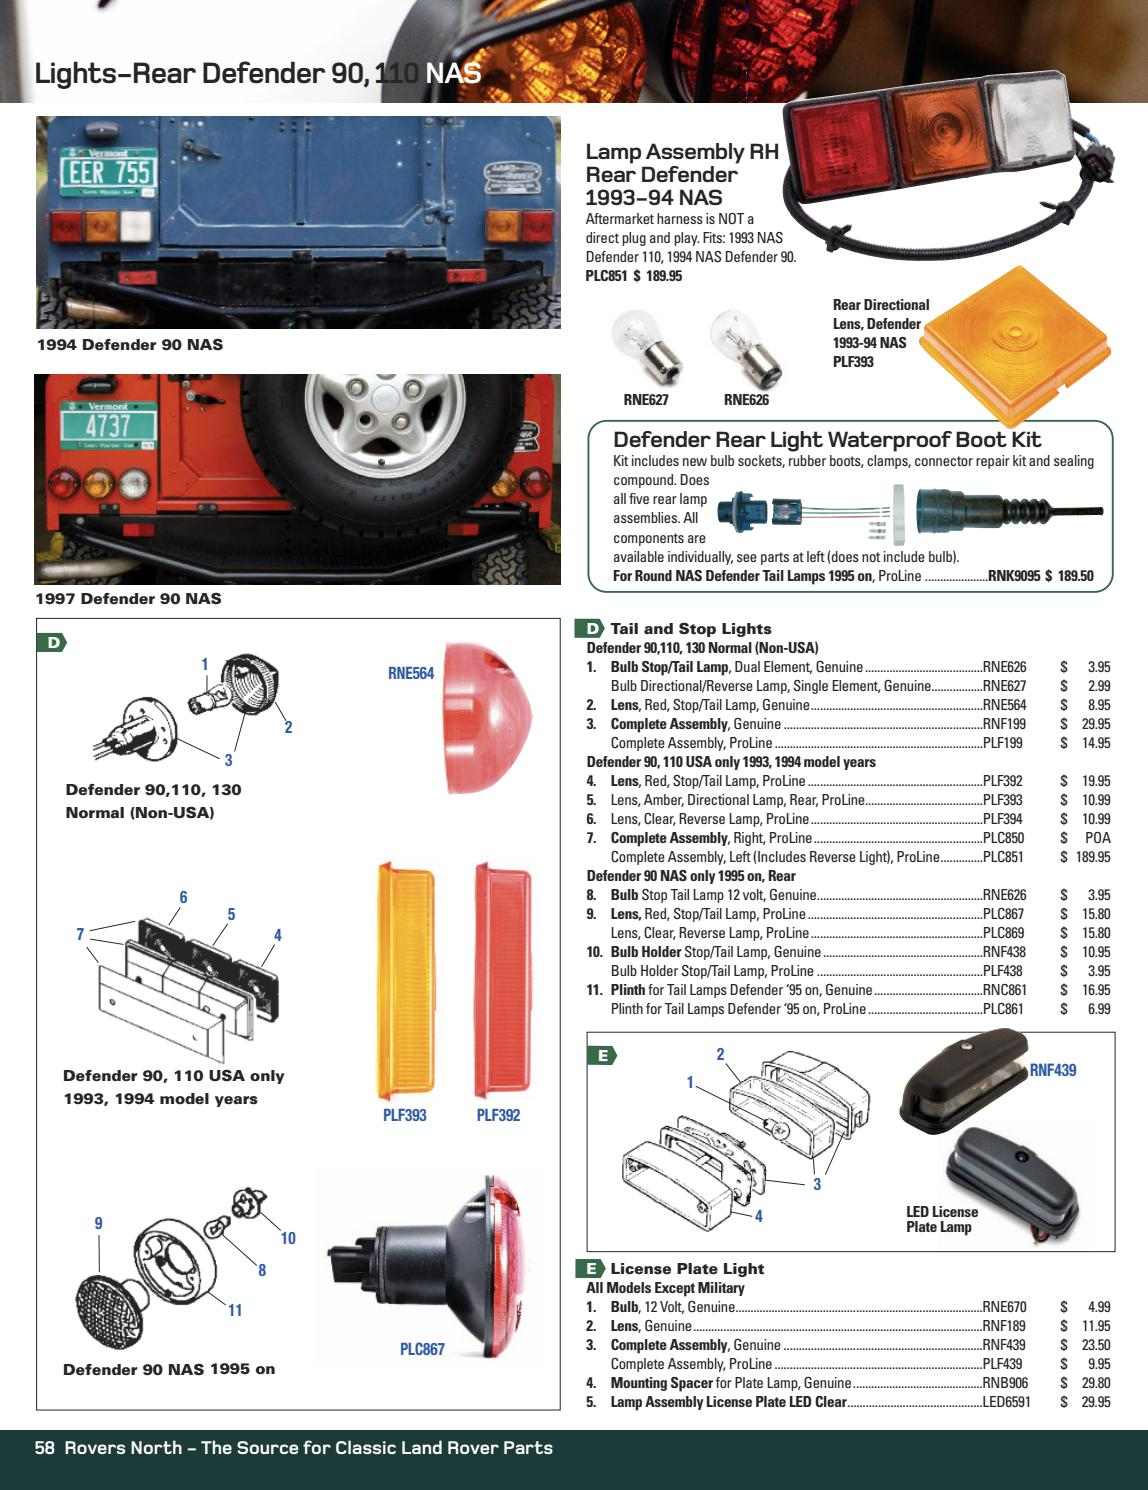 new portland rover in usa dealership or land landrover parts